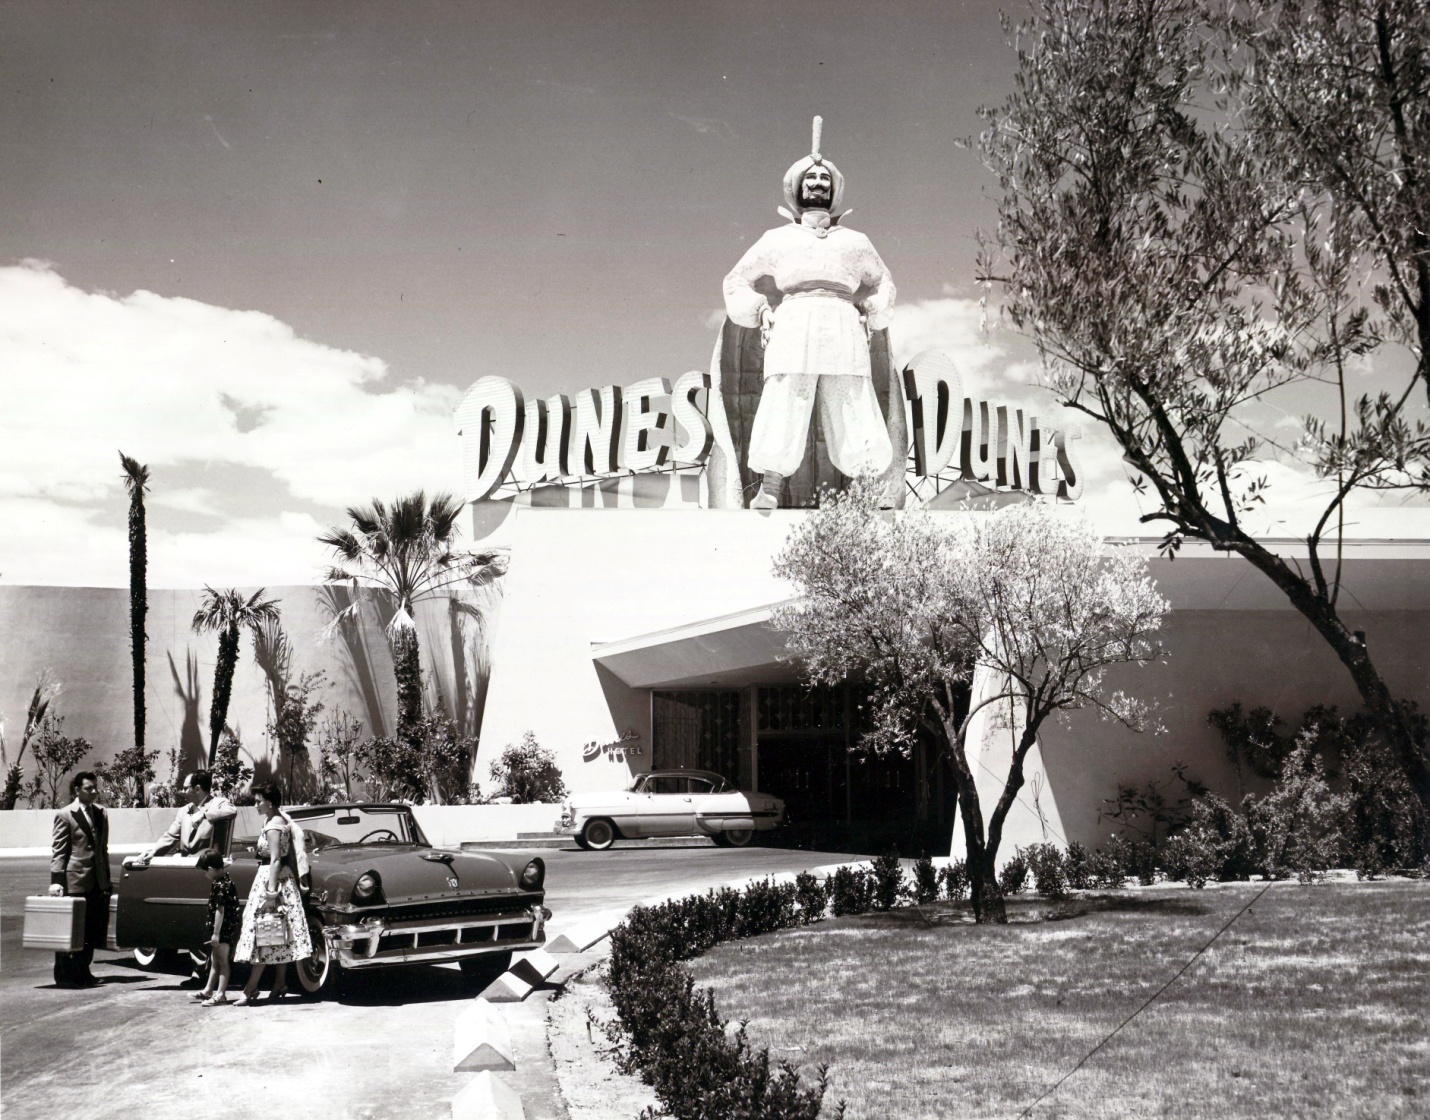 The Dunes Hotel and Casino, 1950s (courtesy of UNLV special collections)